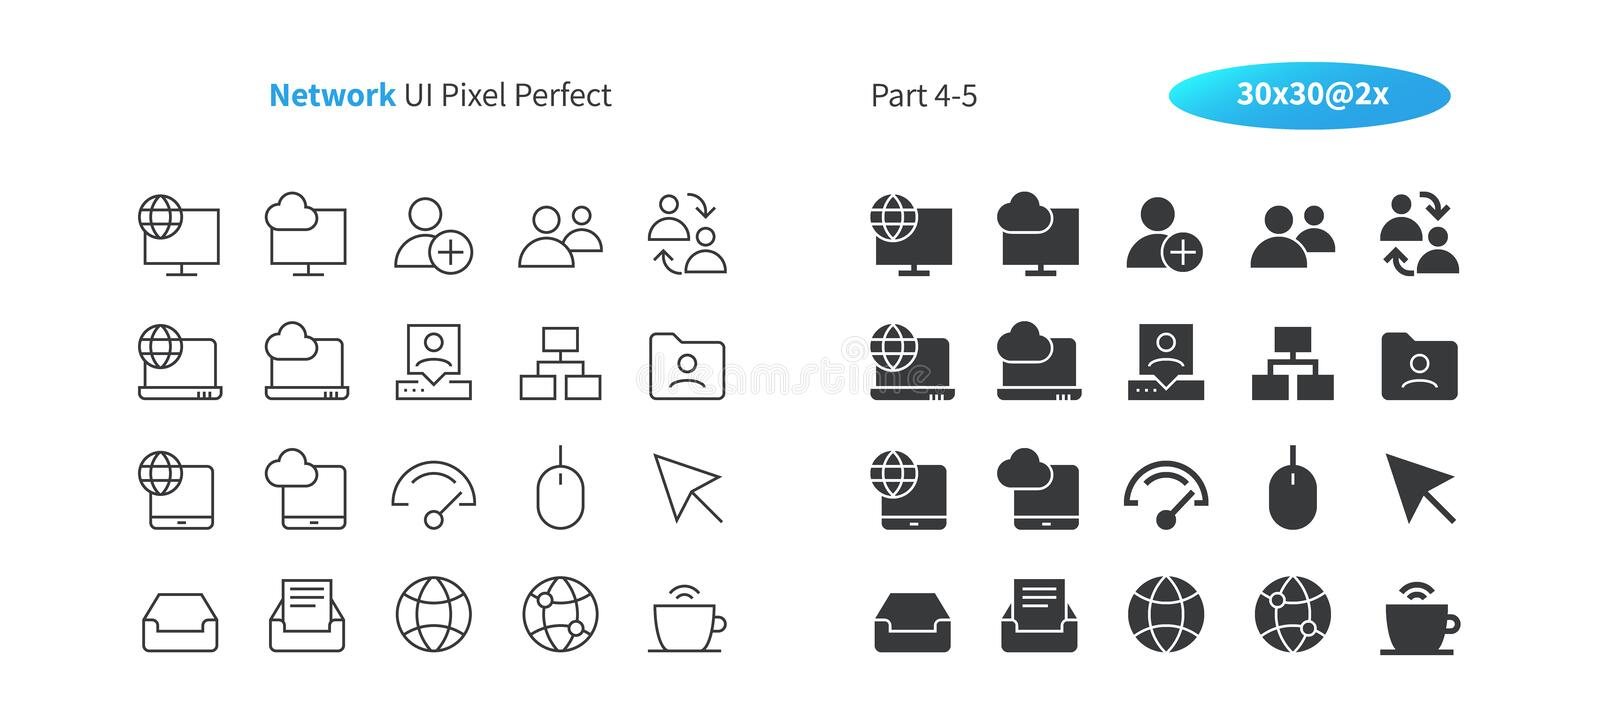 Network UI Pixel Perfect Well-crafted Vector Thin Line And Solid Icons 30 2x Grid for Web Graphics and Apps. Simple vector illustration